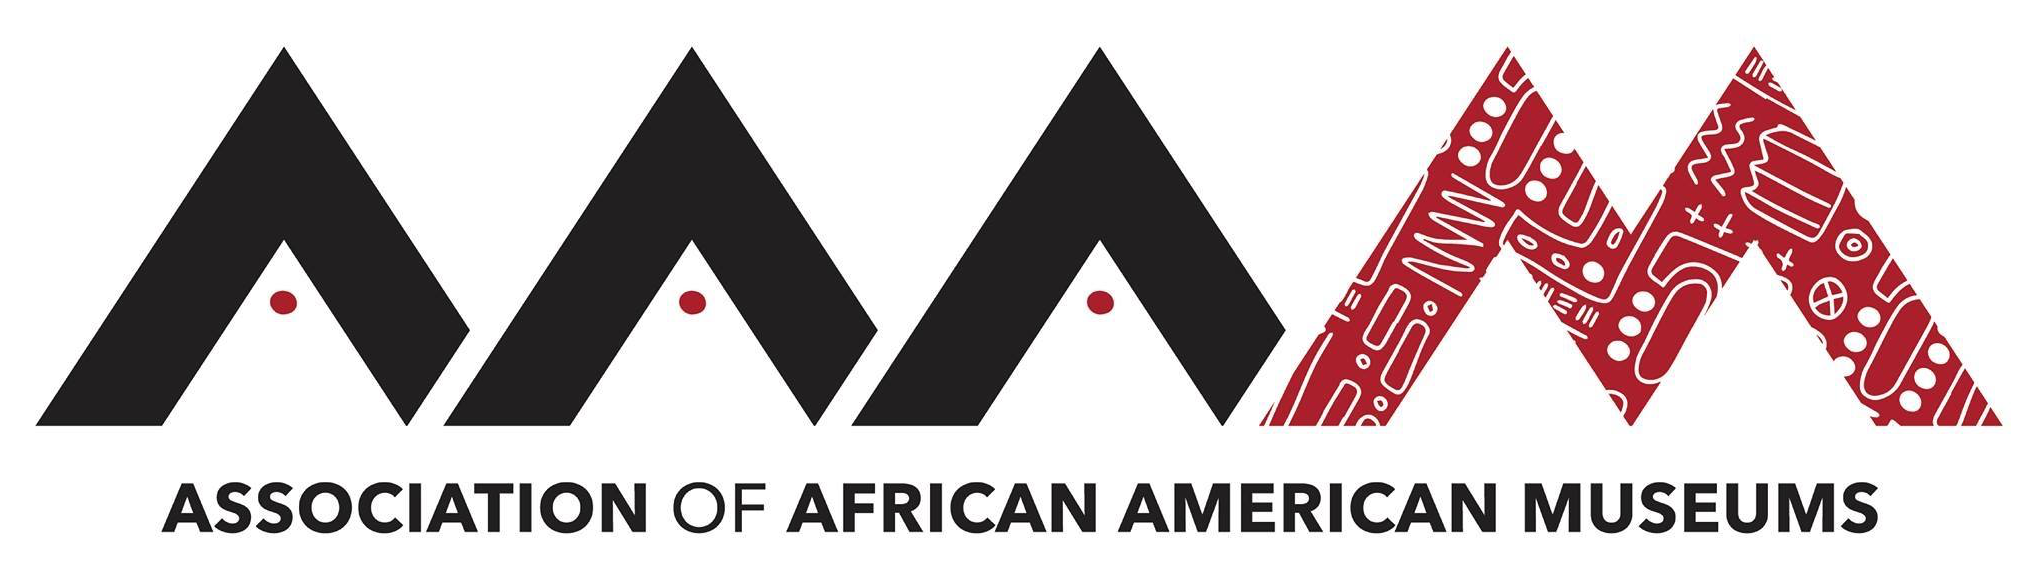 American Association of African Musems